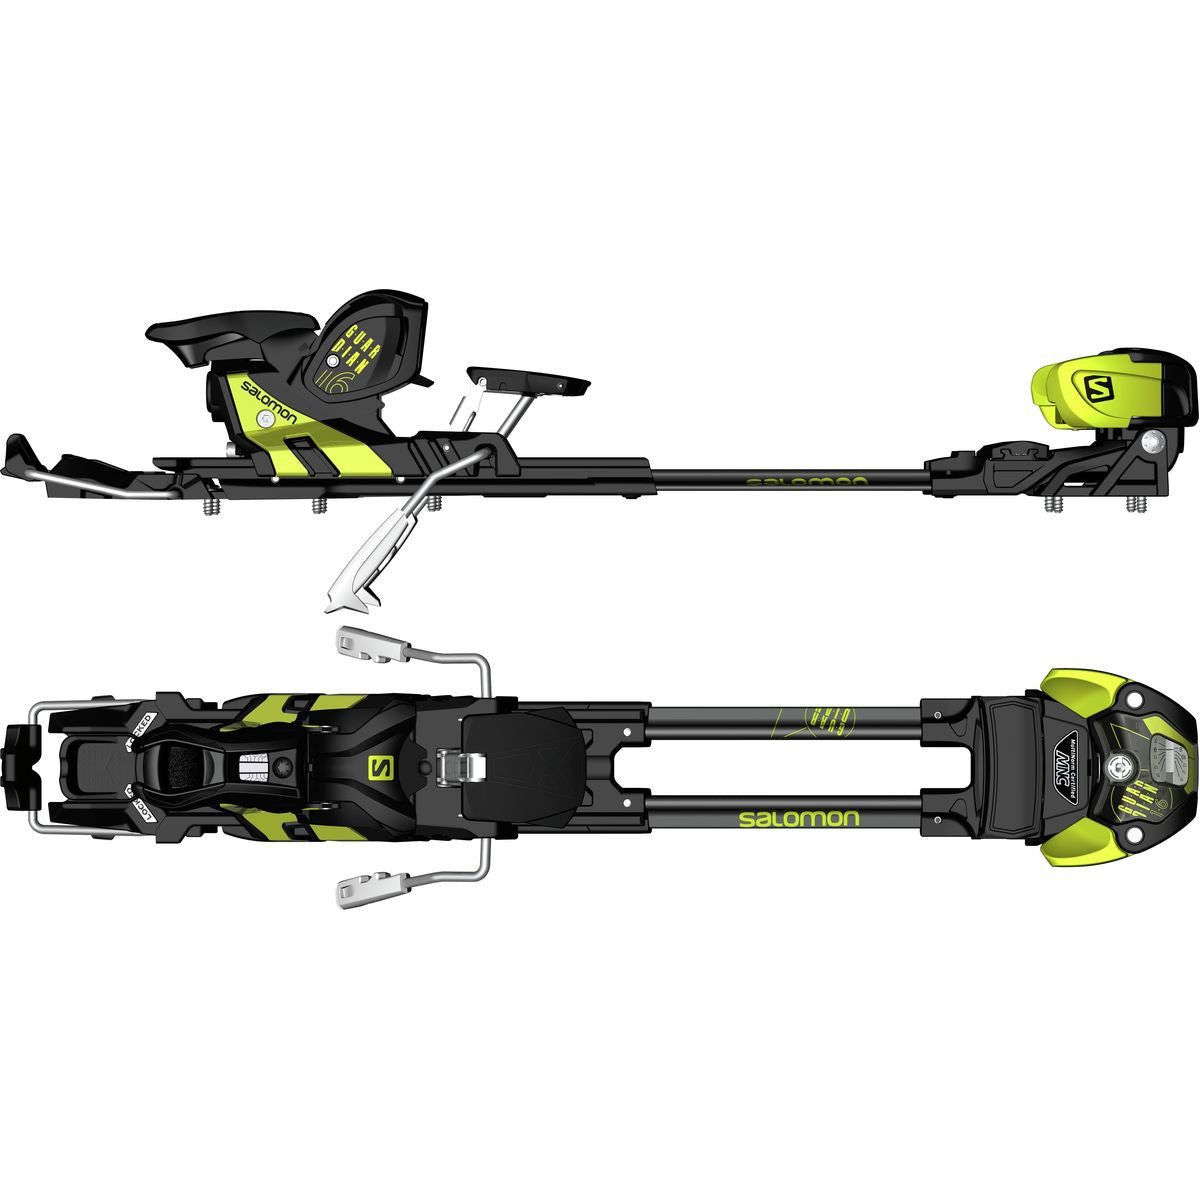 f3234a4e2095 Salomon Guardian MNC 13 and 16 Alpine Touring Bindings - Meier Skis